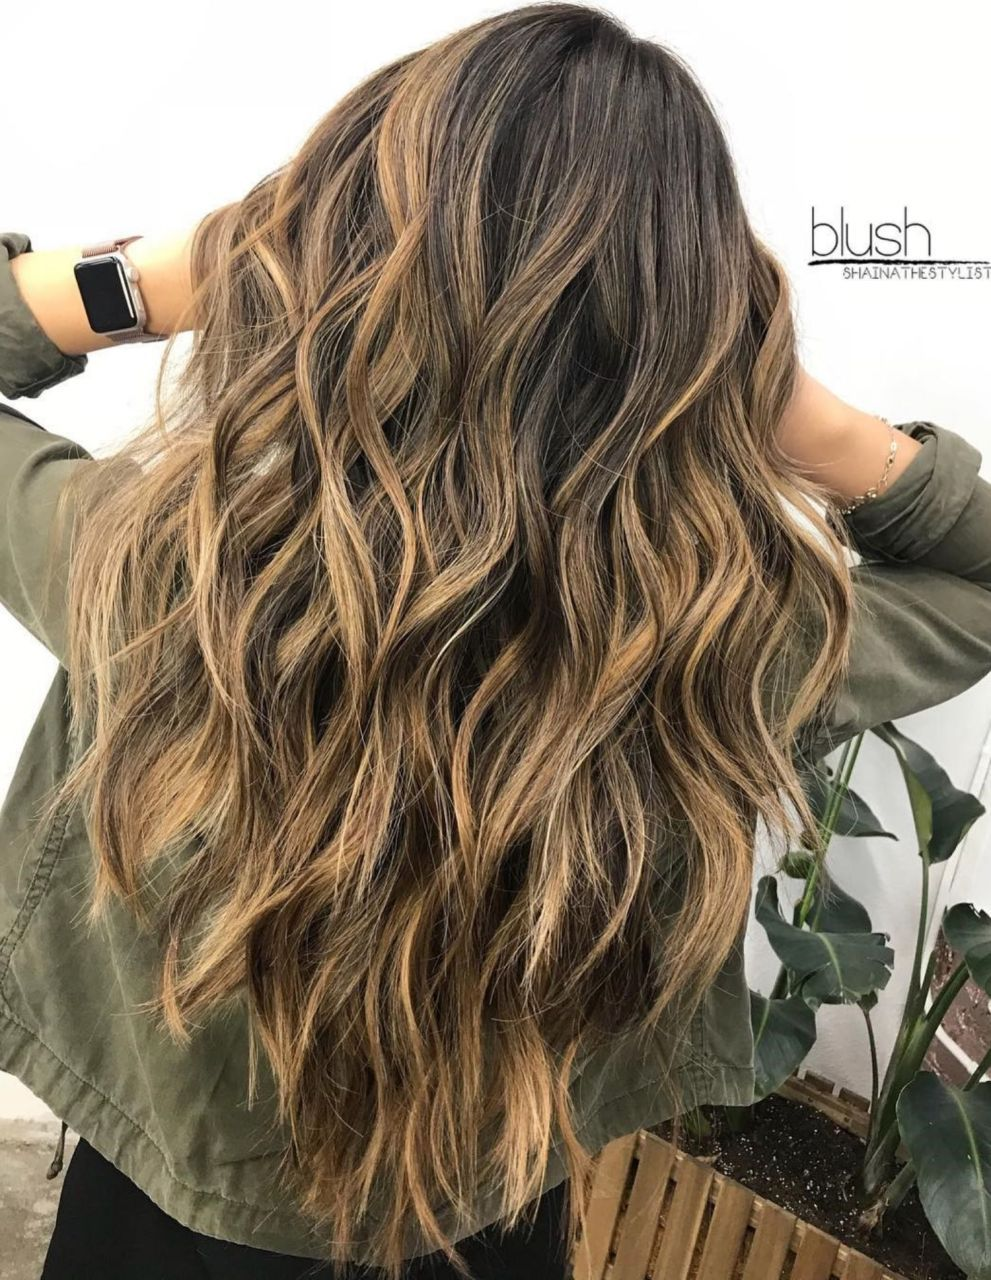 60 Most Beneficial Haircuts For Thick Hair Of Any Length In 2020 Thick Hair Styles Long Wavy Haircuts Haircut For Thick Hair